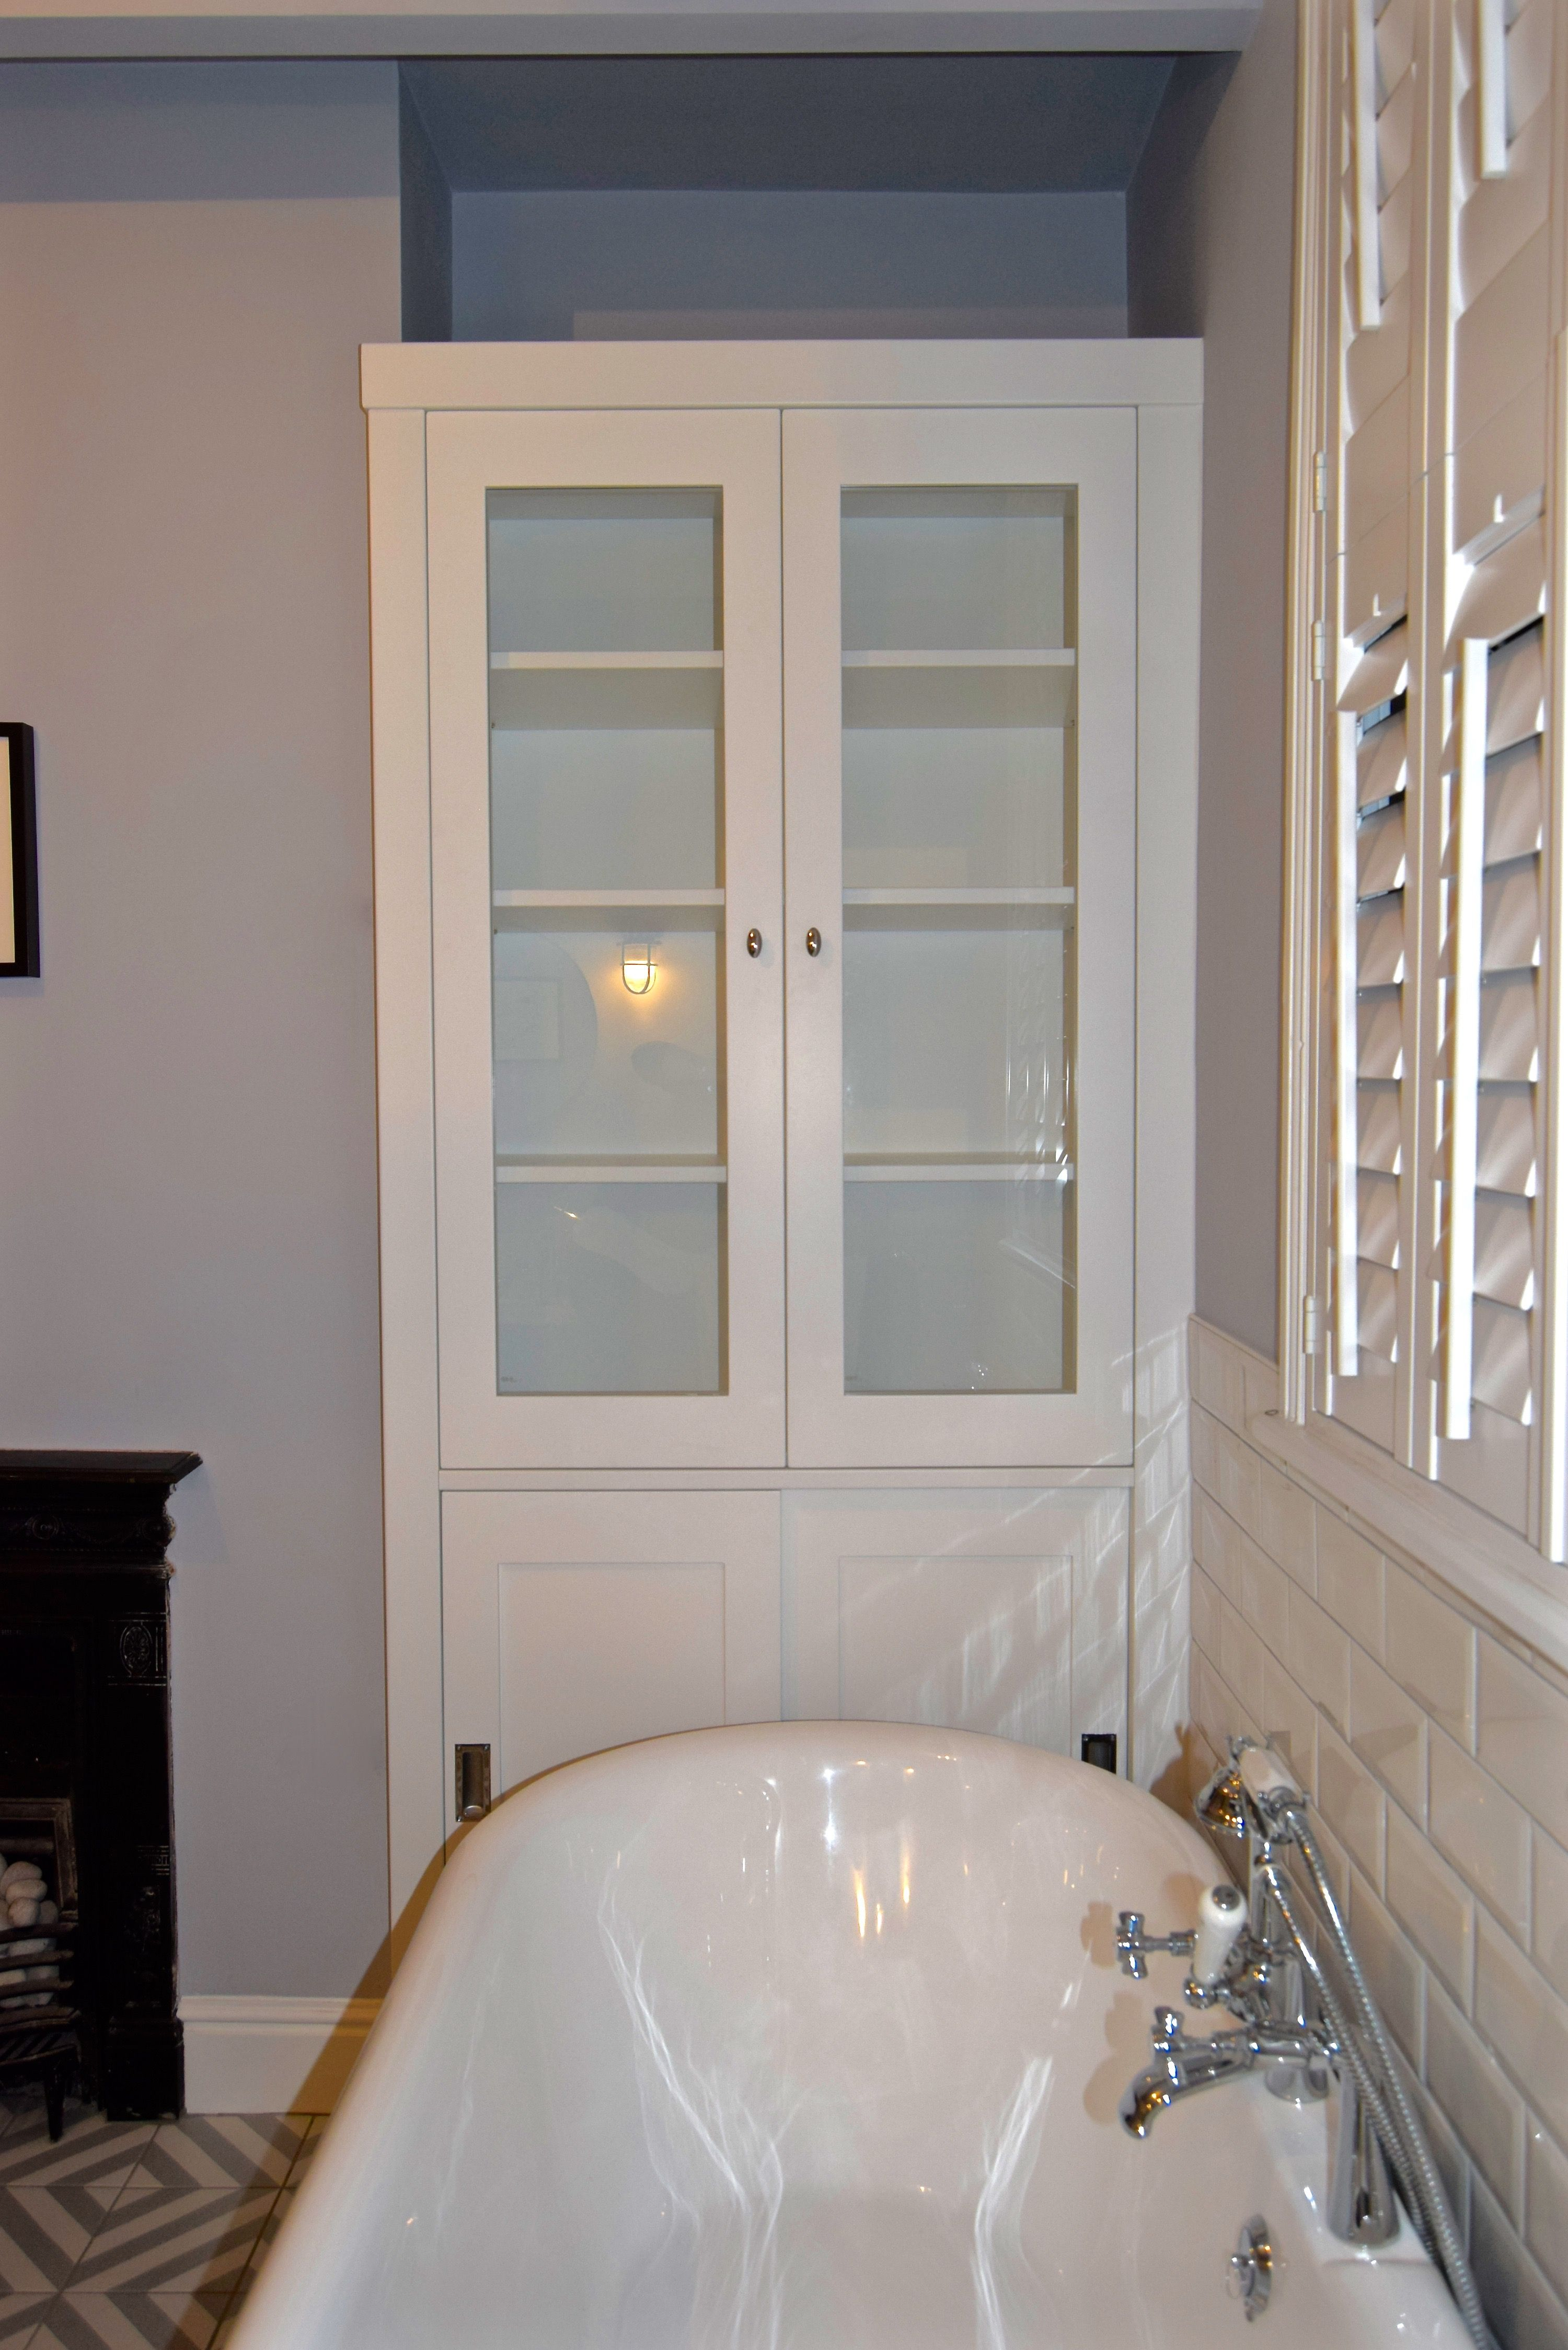 Bespoke fitted bathroomcabinet fitted into the alcove